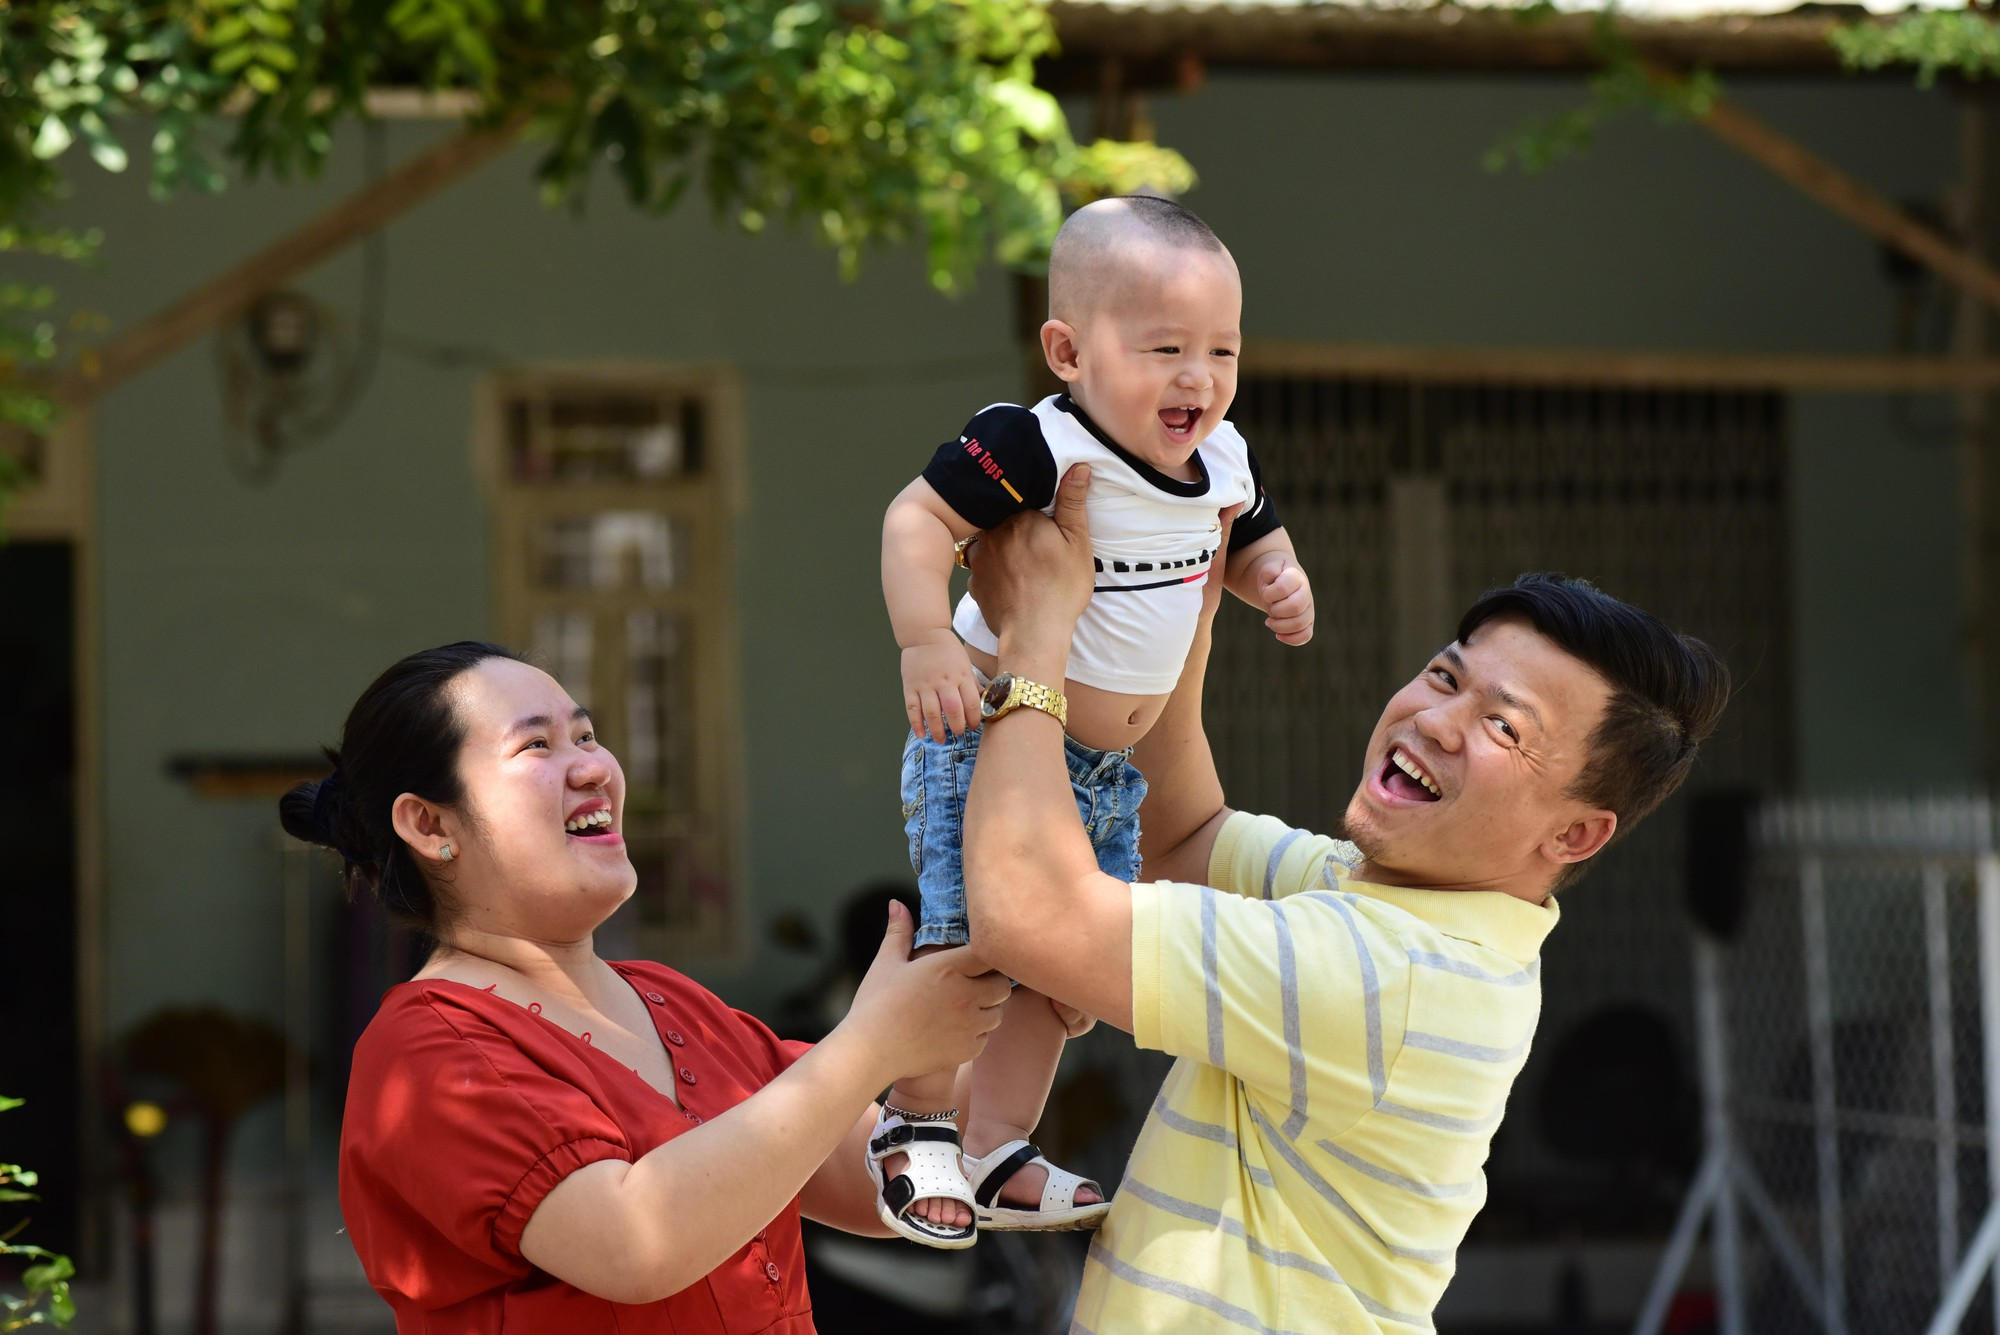 Hospital offers free IVF treatment for 60 infertile couples in Vietnam